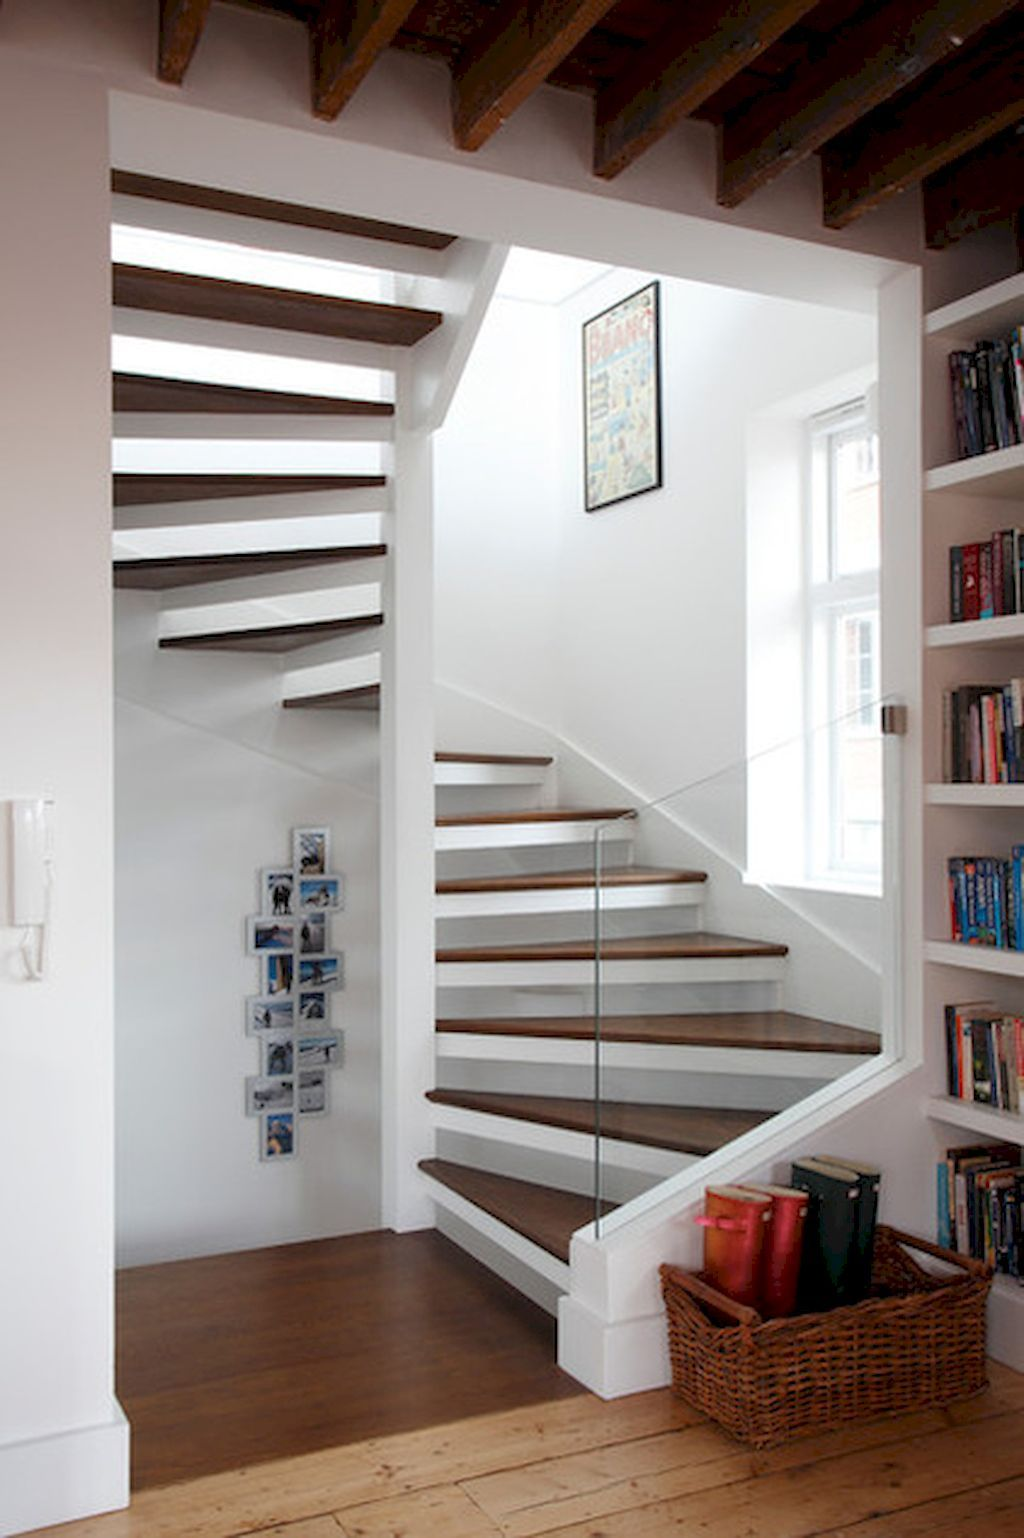 Stair Options For Small Spaces 65 Incredible Loft Stair Ideas Small Room Loft Stairs